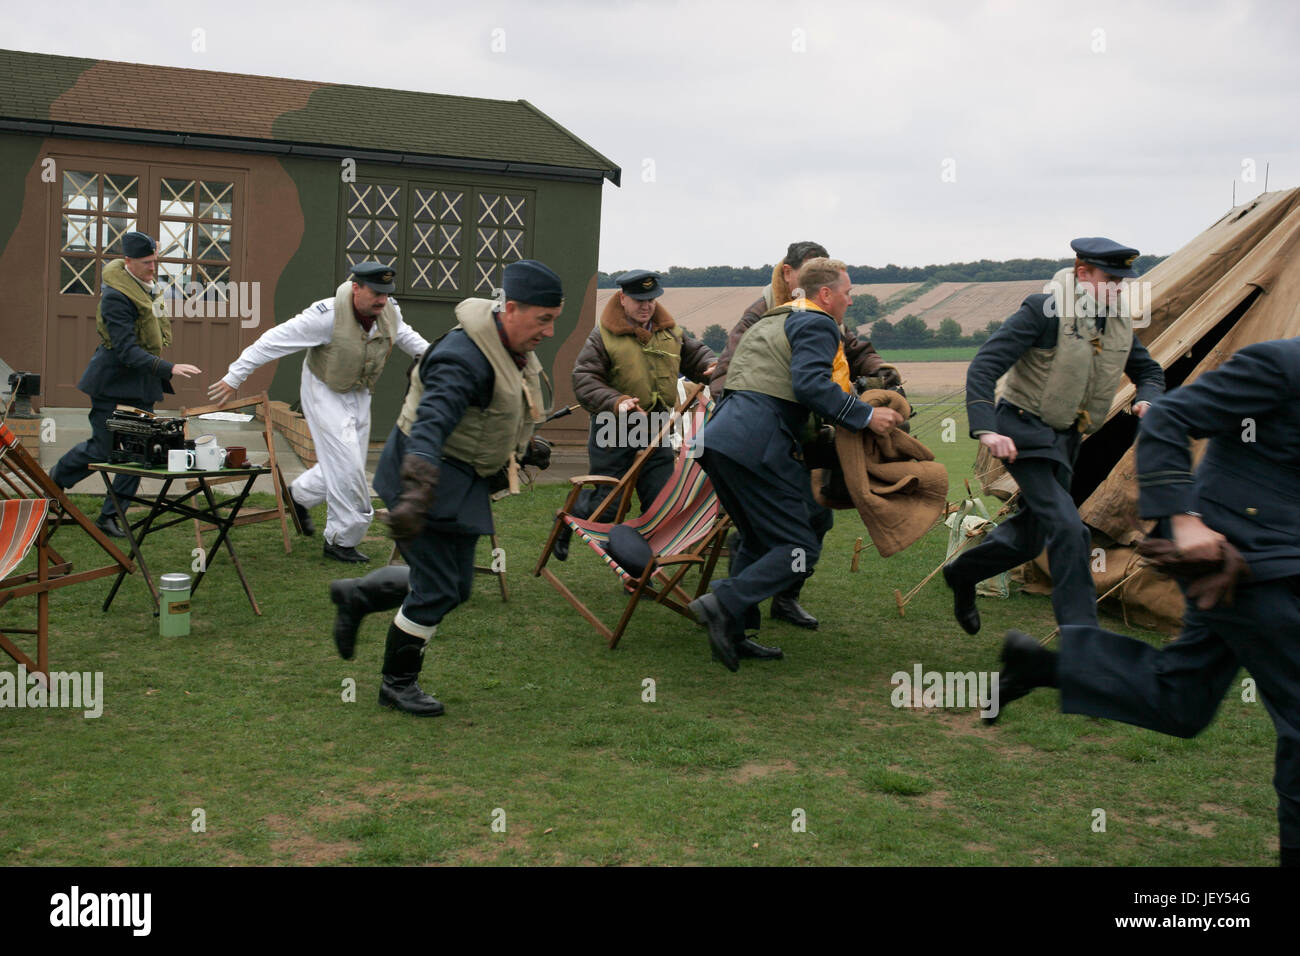 Battle of Britain scramble re-enactment Ops3945 with some photoediting applied to periodise any modern features - Stock Image